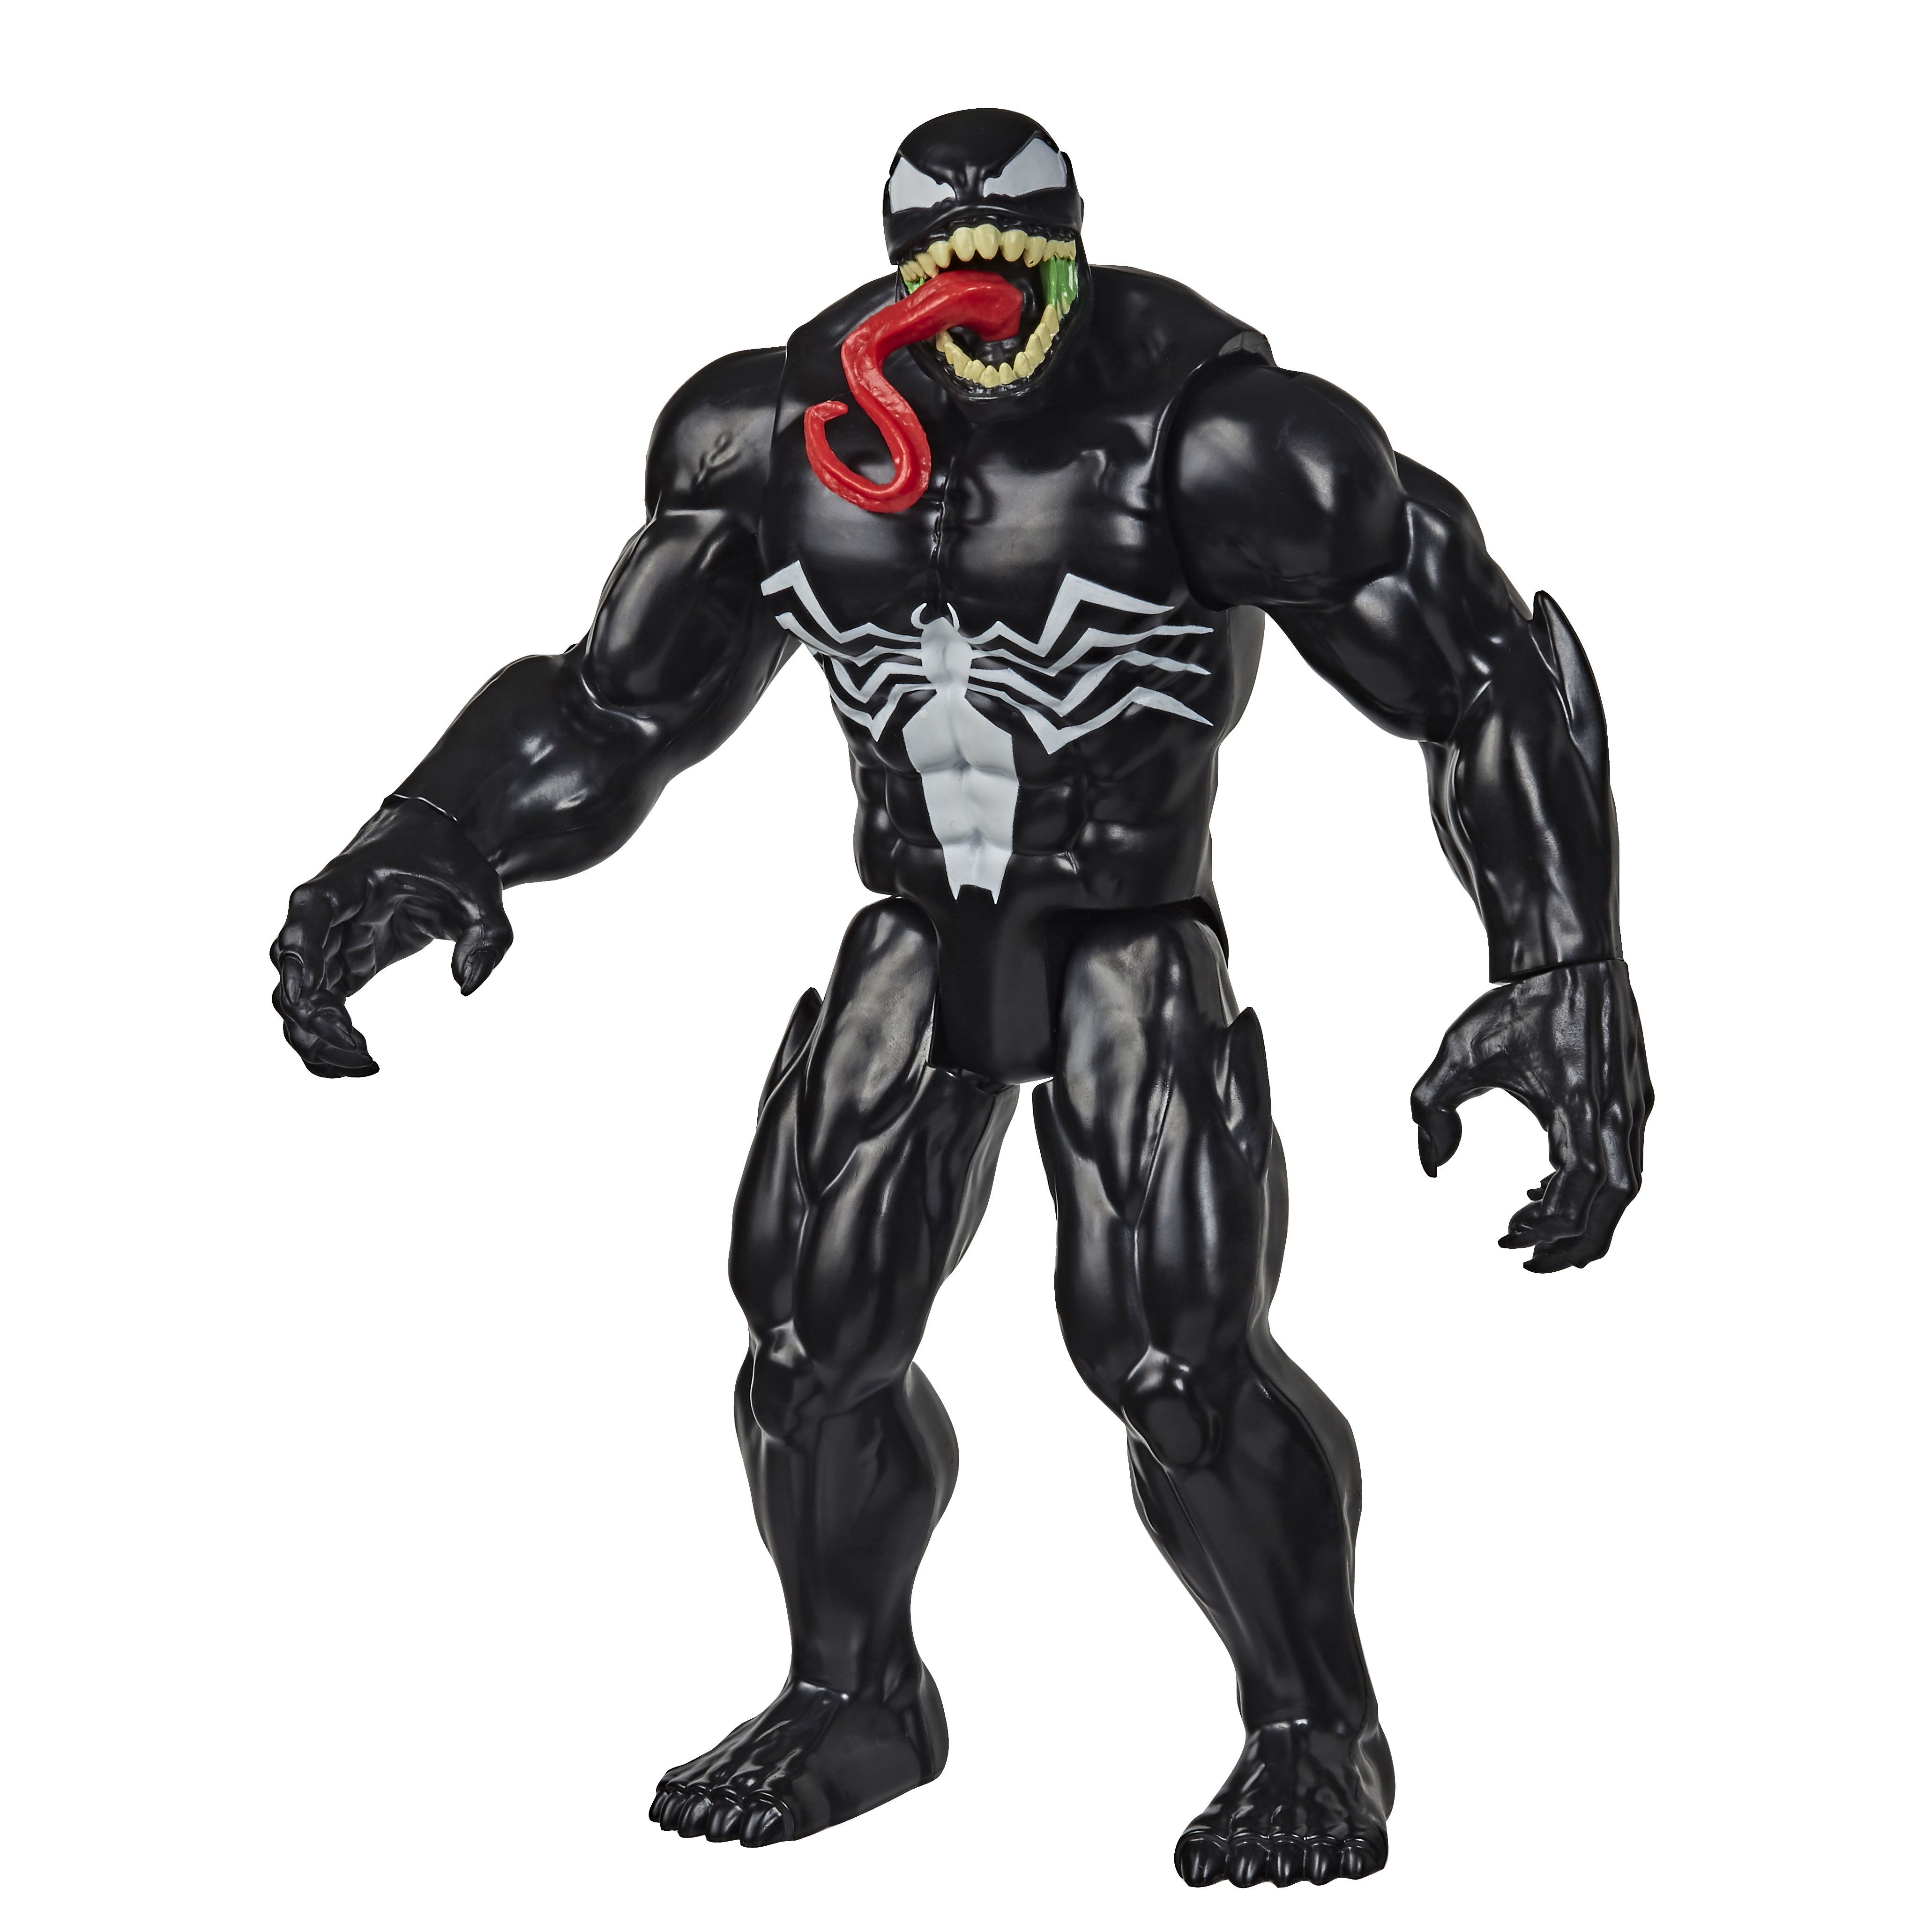 Figura Articulada - 30Cm - Disney - Marvel Titan Hero - Spider-Man Maximum Venom - Venom - Hasbro